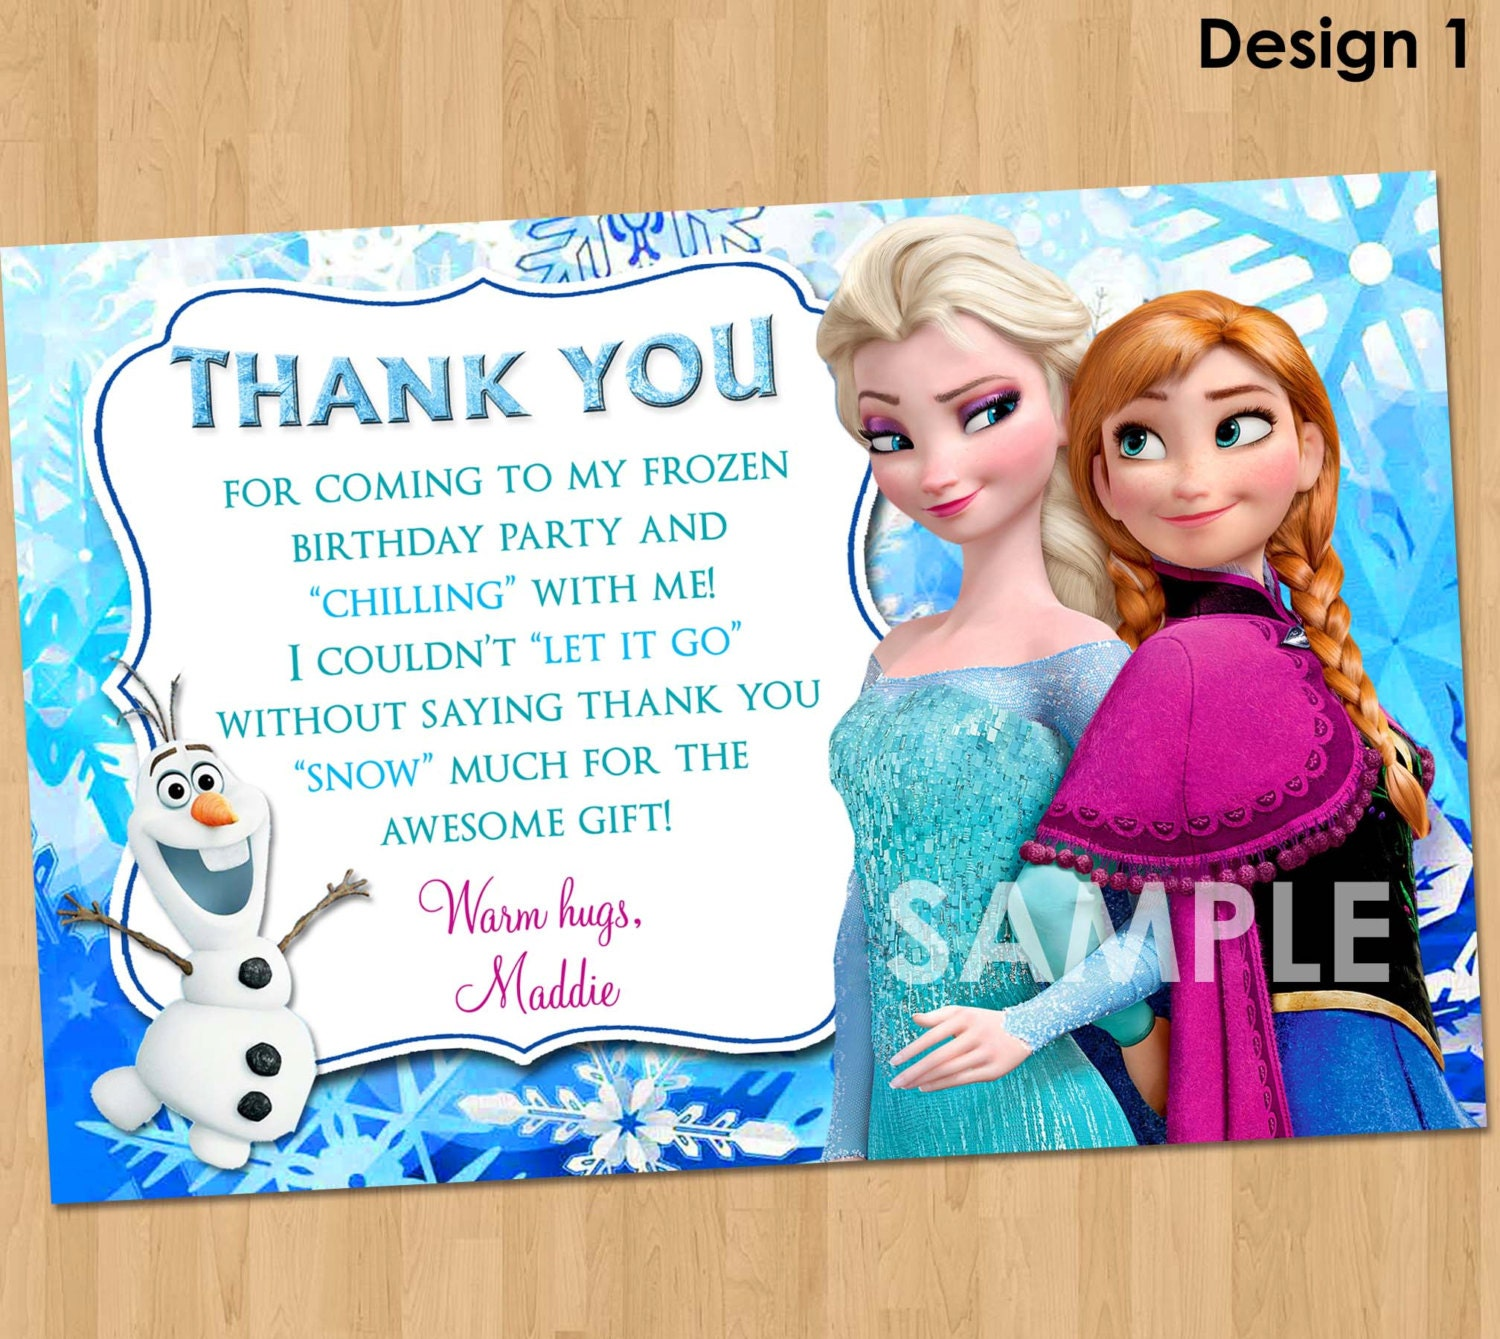 Simplicity image pertaining to frozen birthday card printable